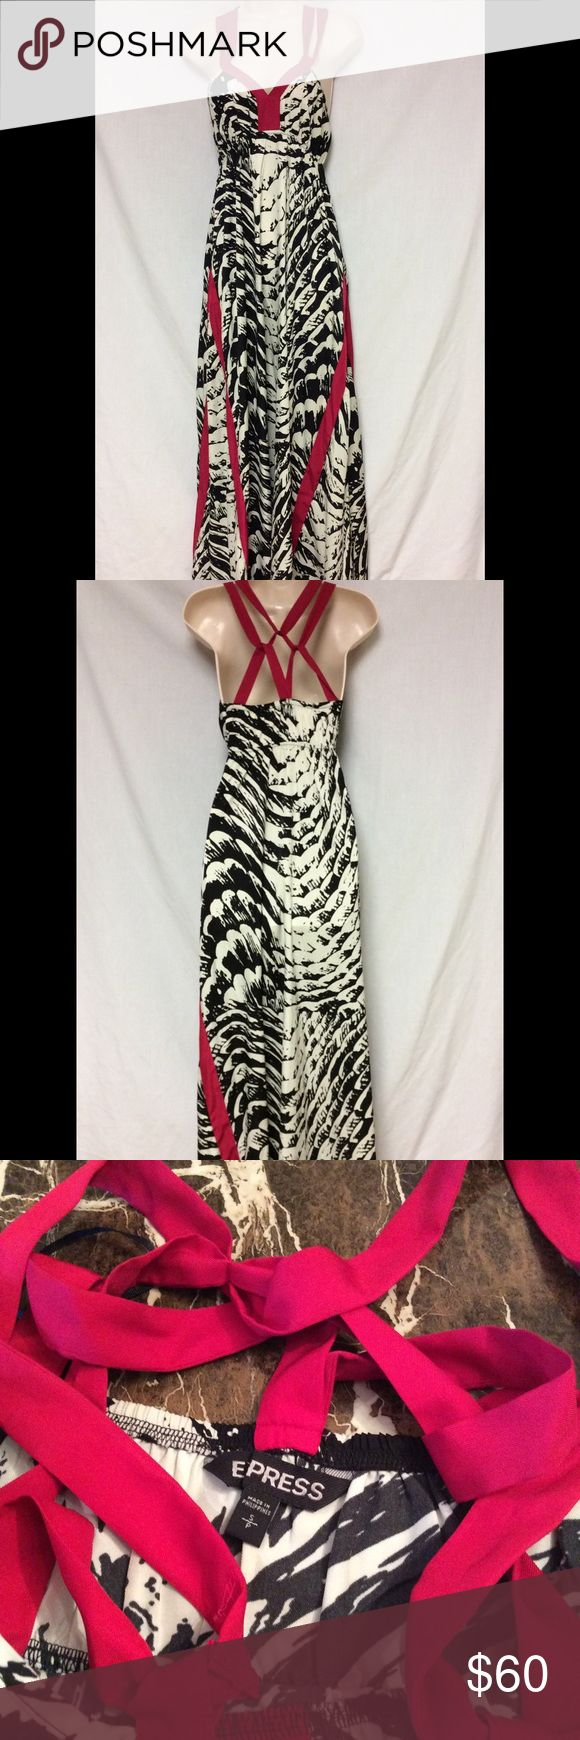 "NWOT EPRESS ZEBRA /PINK MAXI DRESS SIZE SMALL NWOT BEAUTIFUL ELEGANT ZEBRA /PINK MAXI DRESS ,BY EXPRESS...DRESS IS SIZE SMALL.....MEASUREMENTS ARE PIT TO PIT 15"",,TOP TO BOTTOM 51""... SORRY NO TRADES... Express Dresses Maxi"